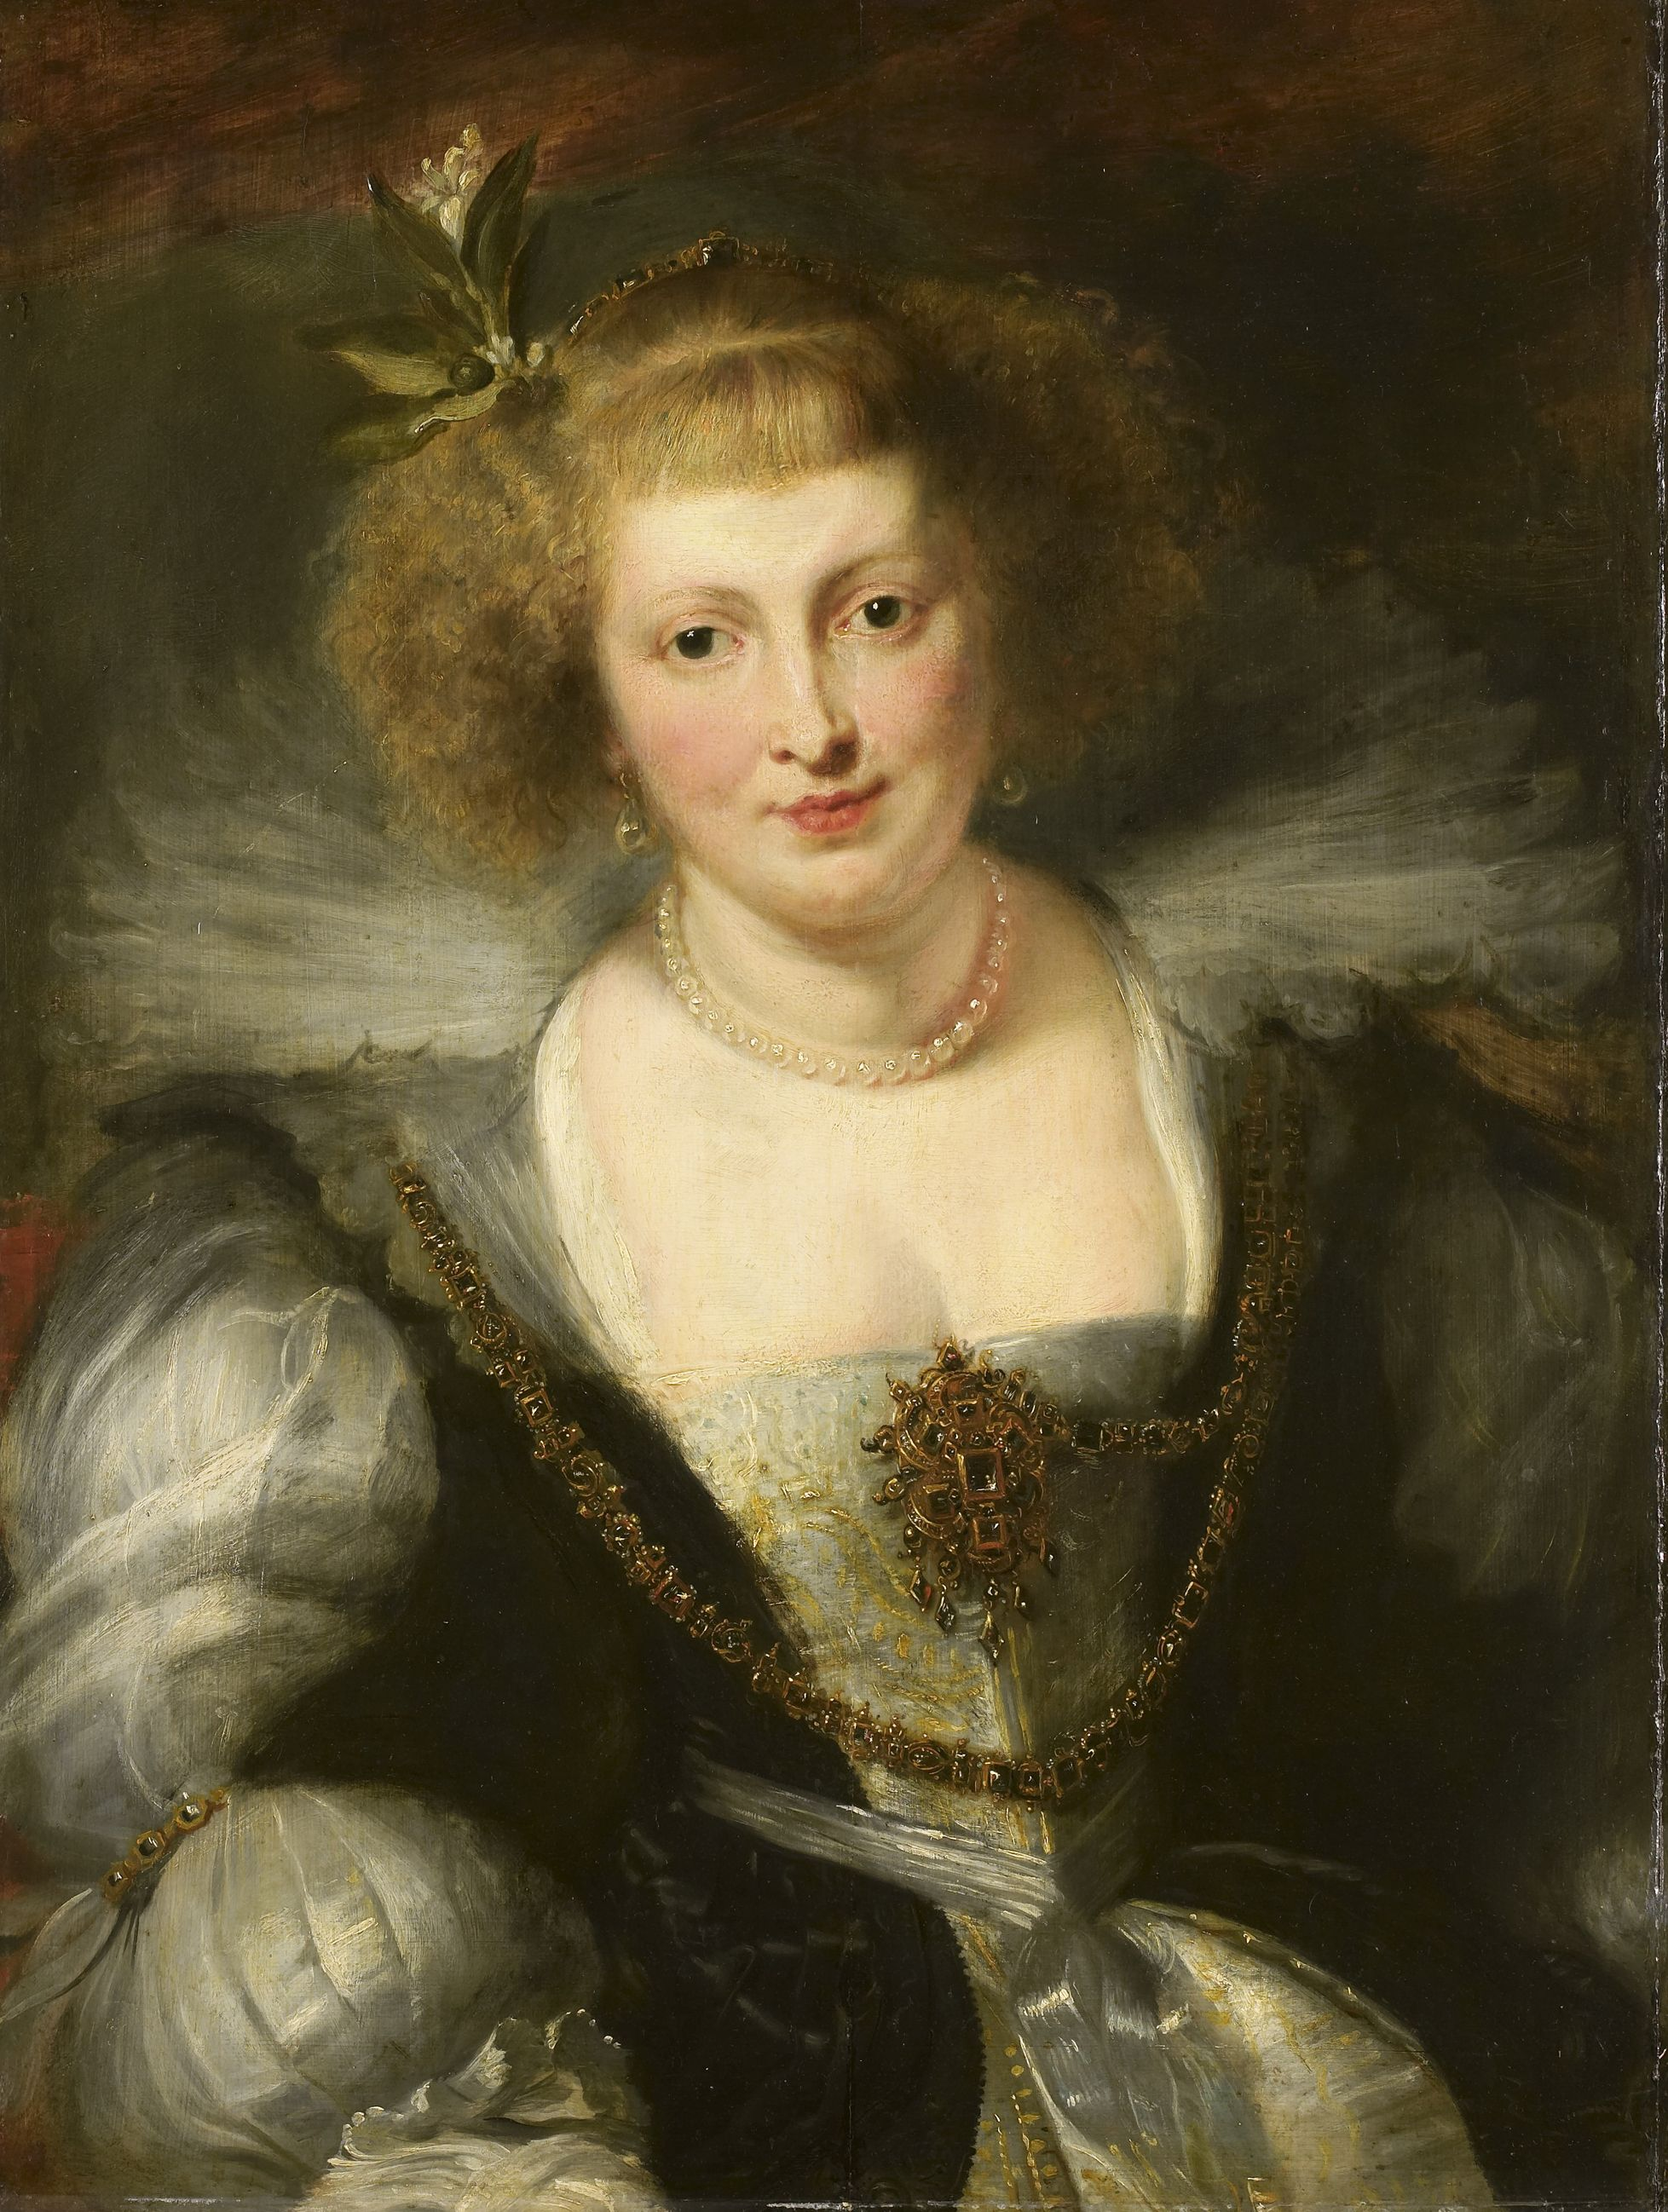 a biography of peter paul rubens a flemish painter of the 17th century When the getty acquired an 17th century drawing by flemish artist peter by the 17th century flemish painter peter paul rubens was destroyed by an.